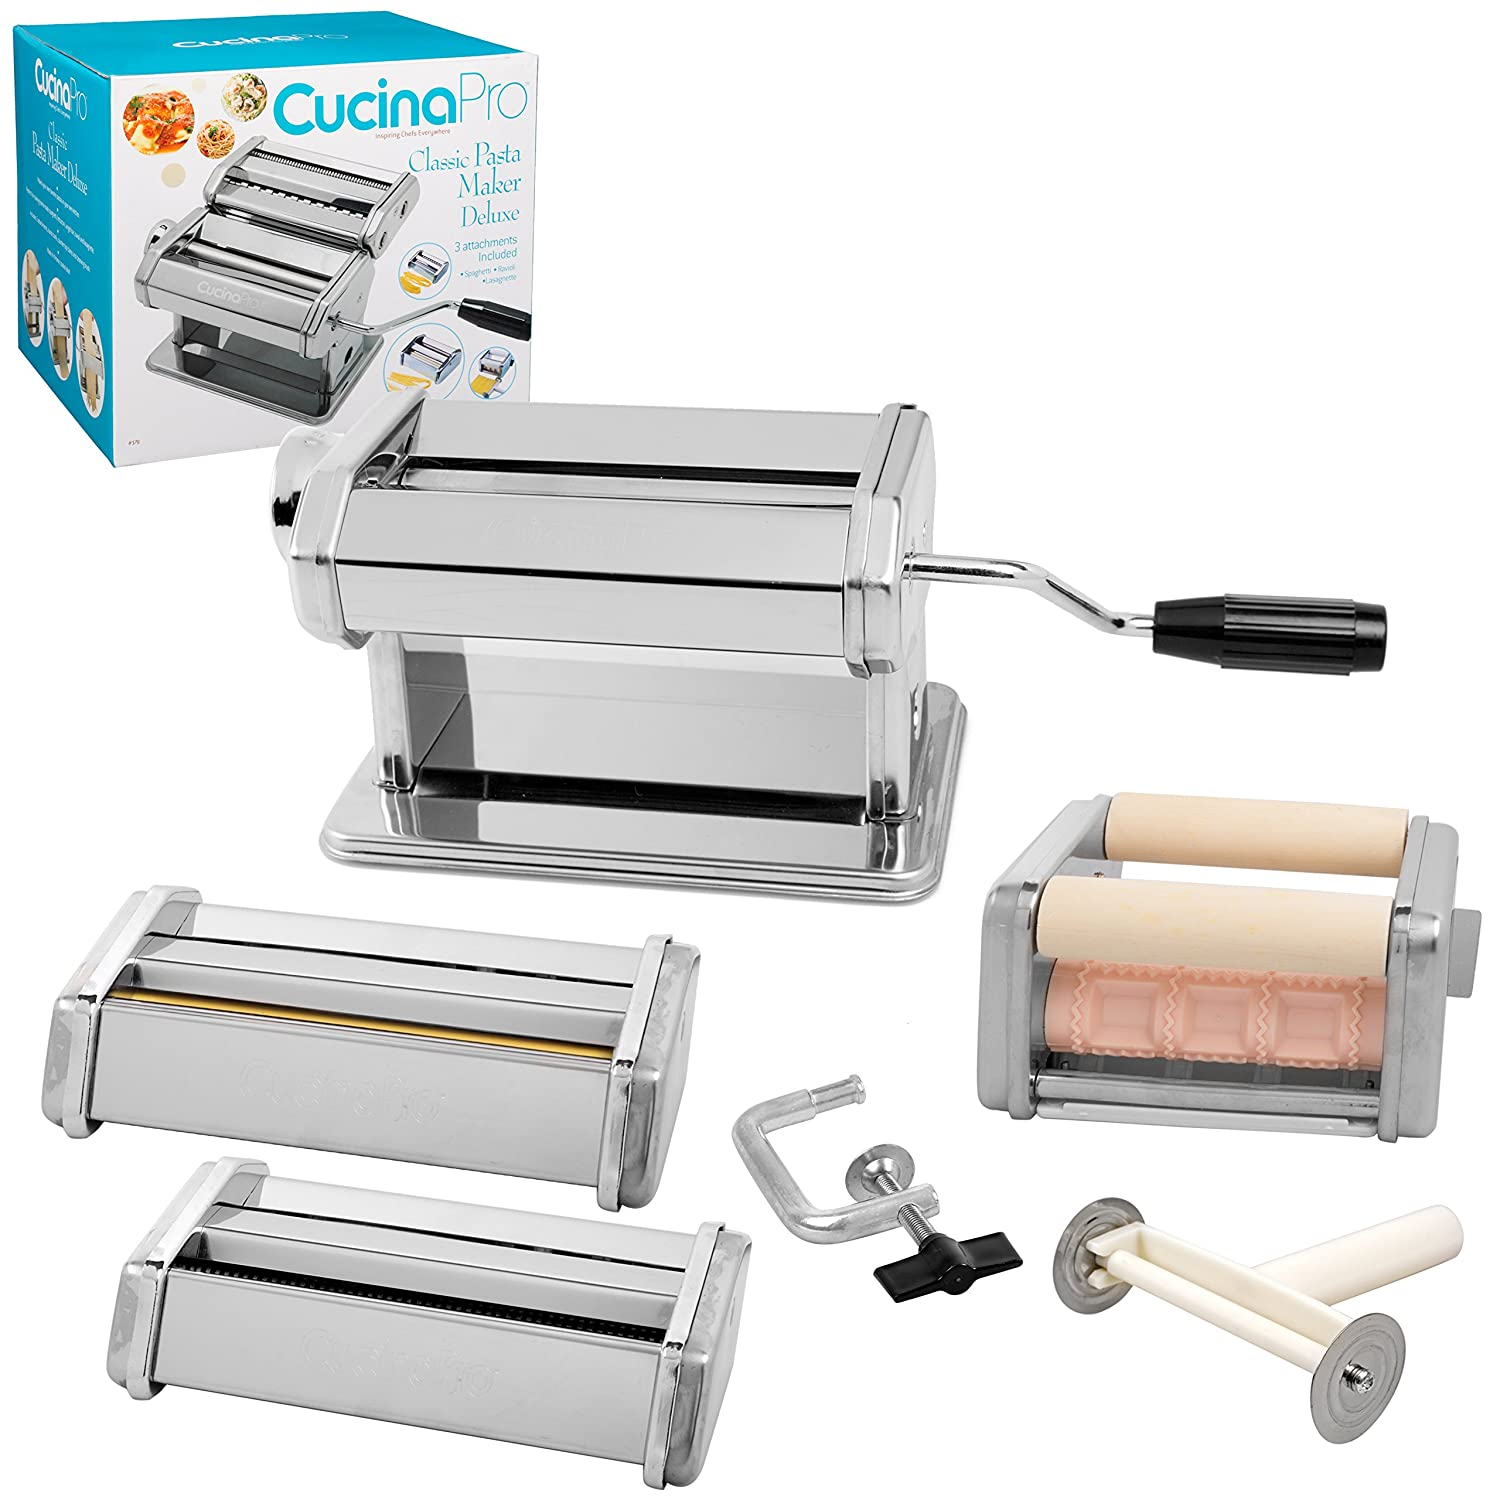 Best Pasta Maker Top 10 Auto And Electric Pasta Maker